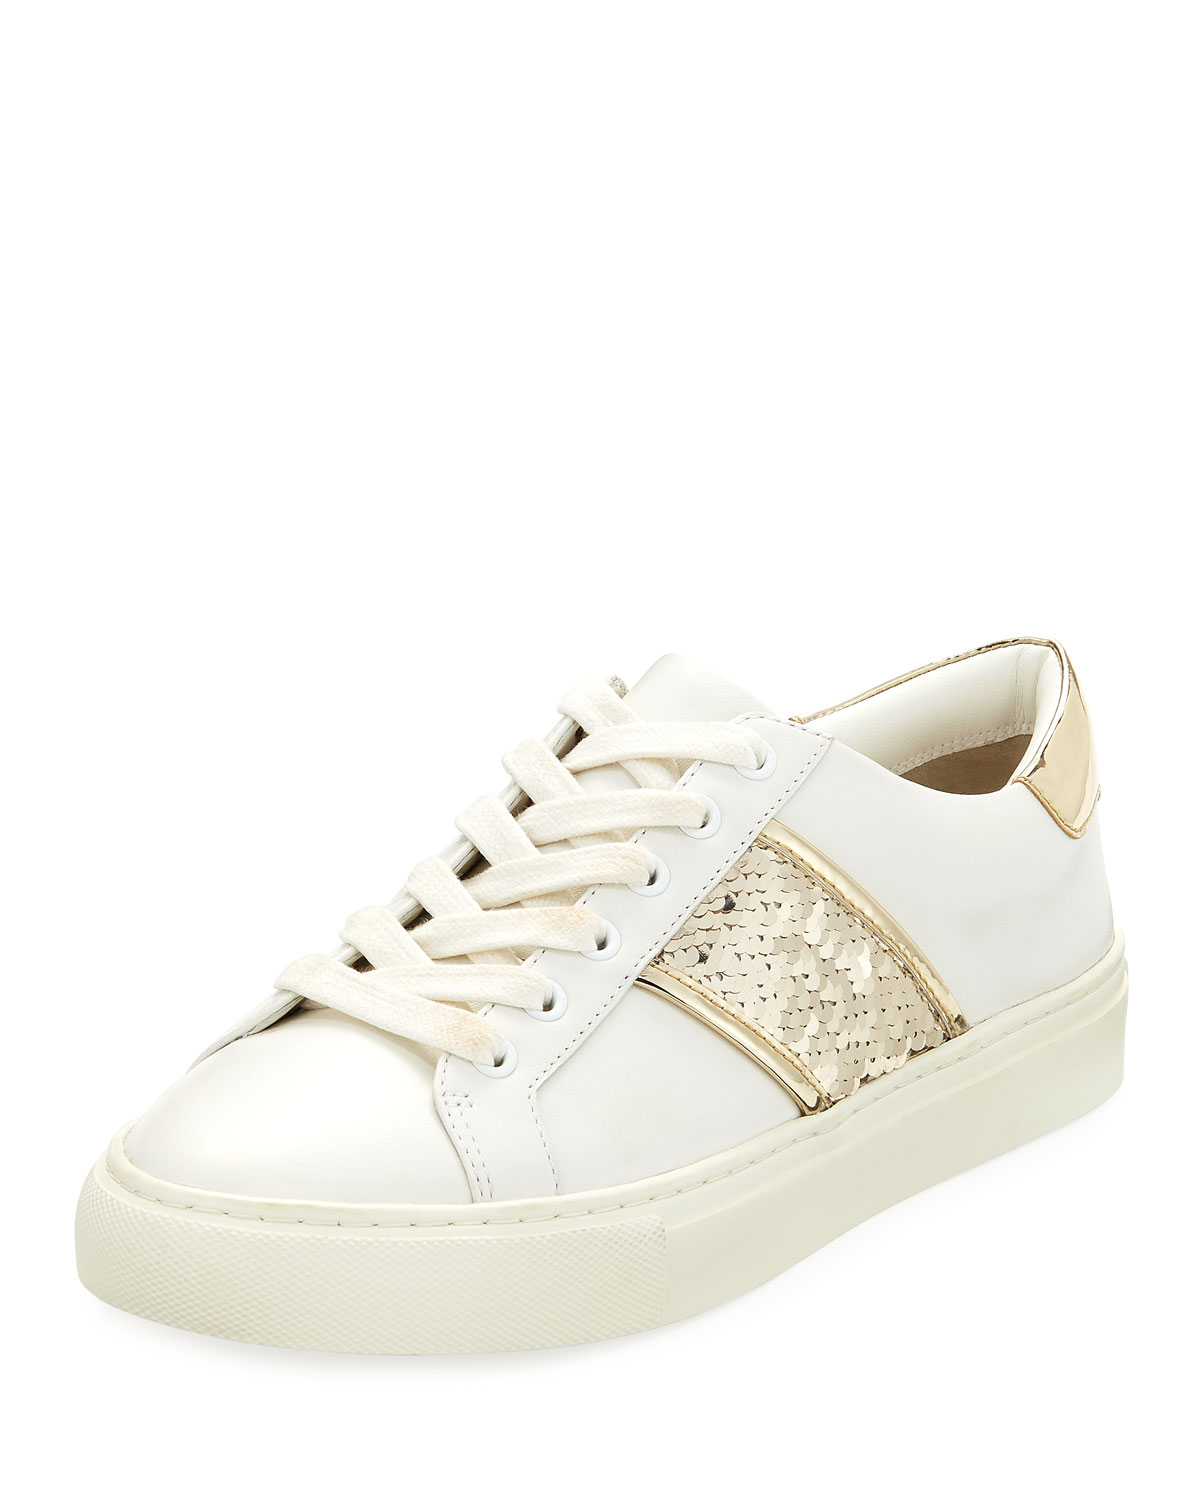 4a235c4f0 Tory Burch Carter Lace-Up Low-Top Sneaker